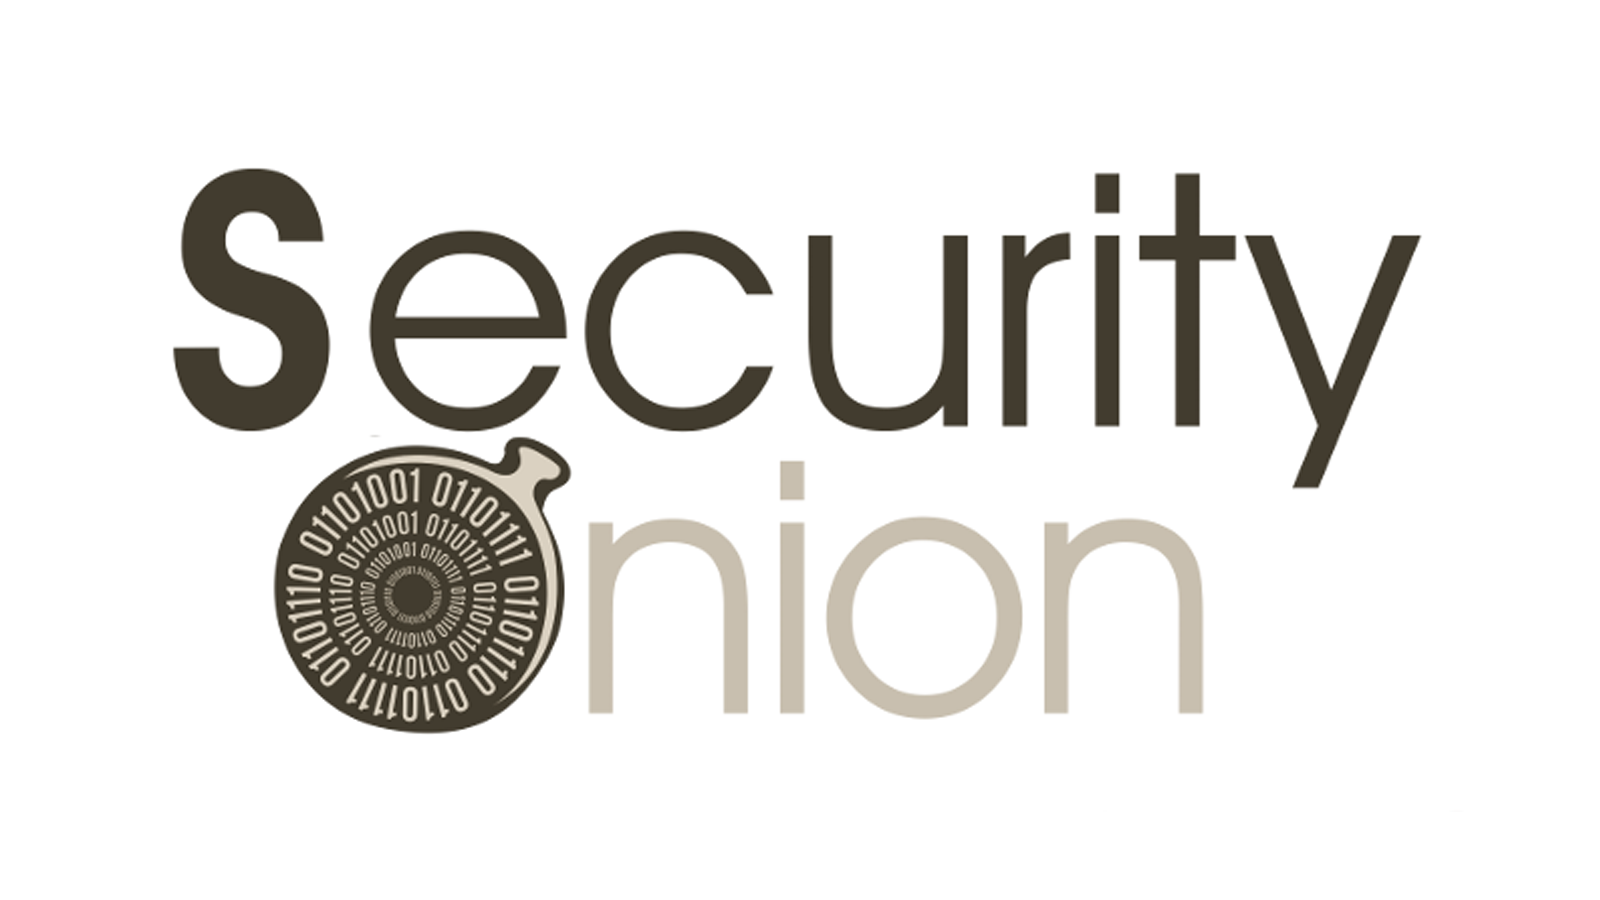 Security Onion - Linux Distro for Intrusion Detection, Network Security Monitoring, and Log Management